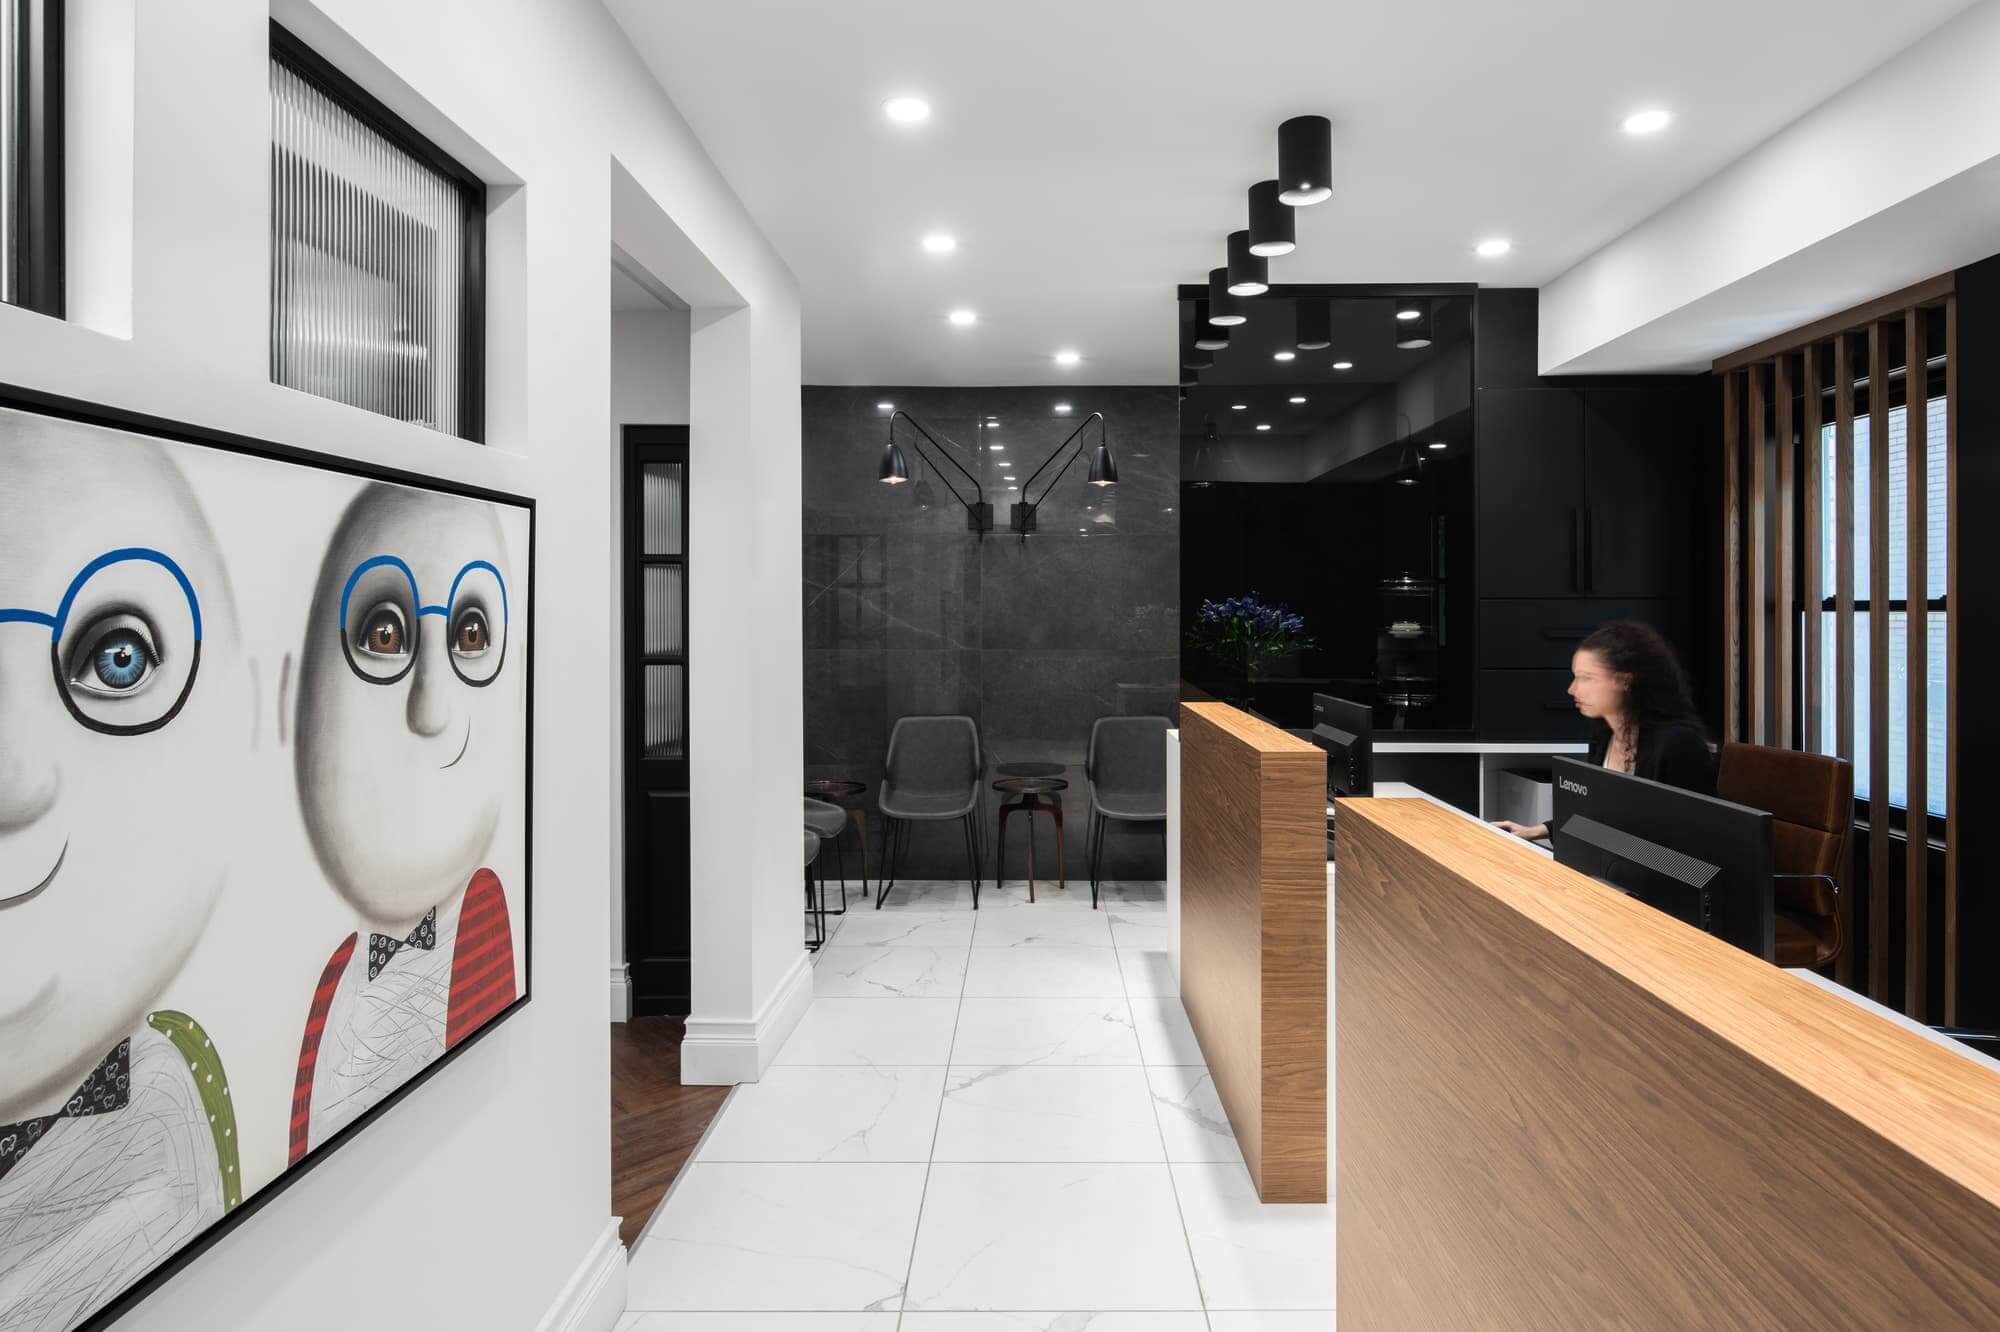 Dental clinic remodel - Montreal - Vue of the front desk